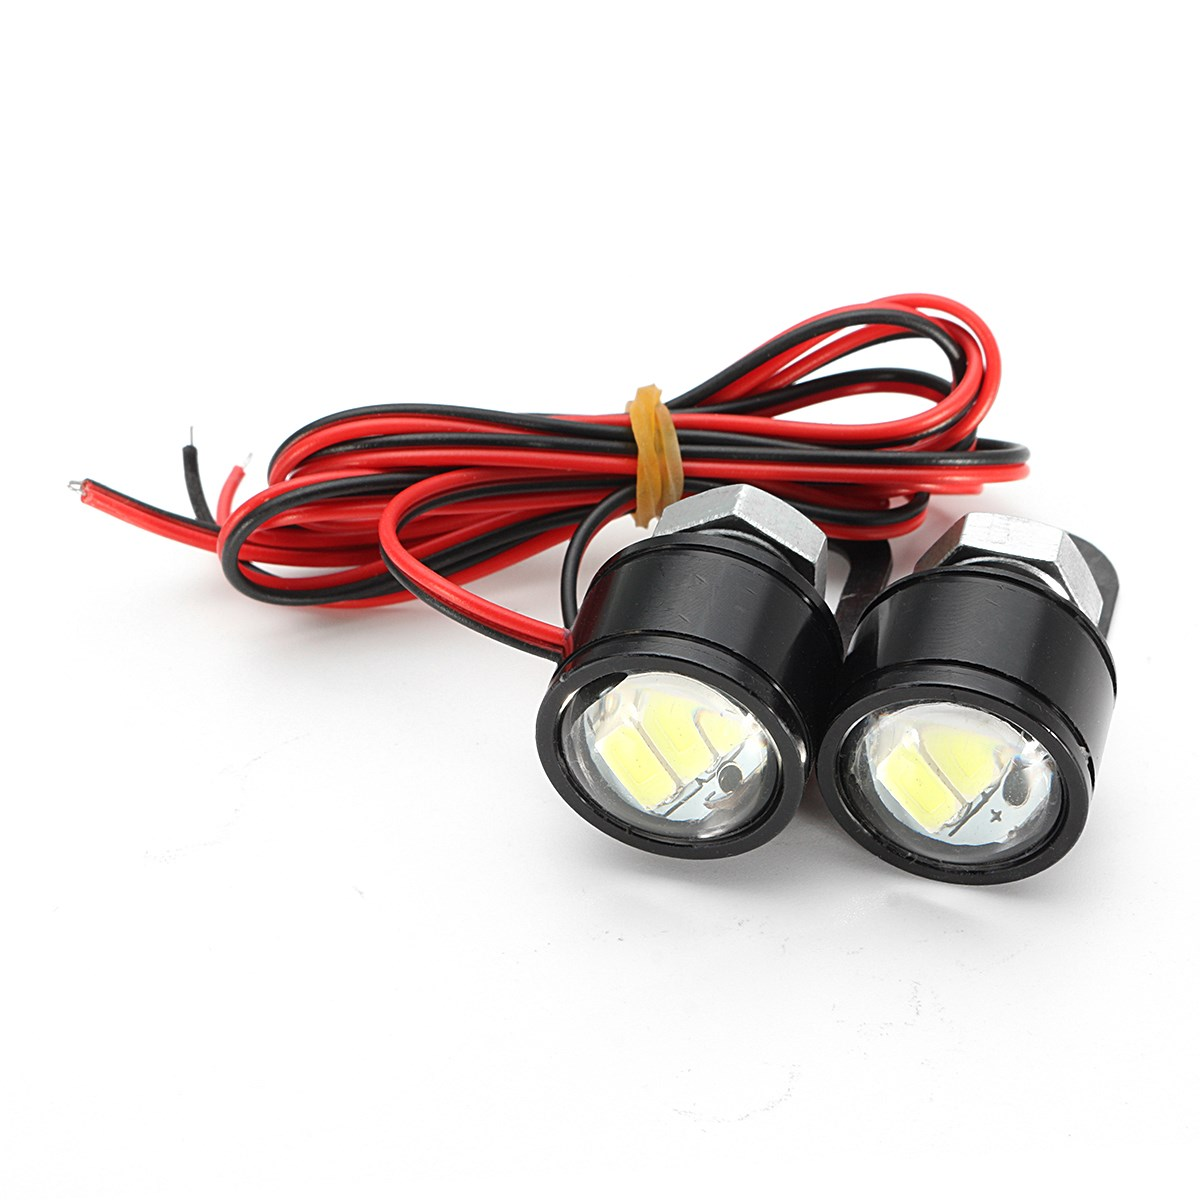 2pcs-12v-motorcycle-contant-bright-eagle-eye-led-daytime-running-light-lamp-rearview-mirror-decor